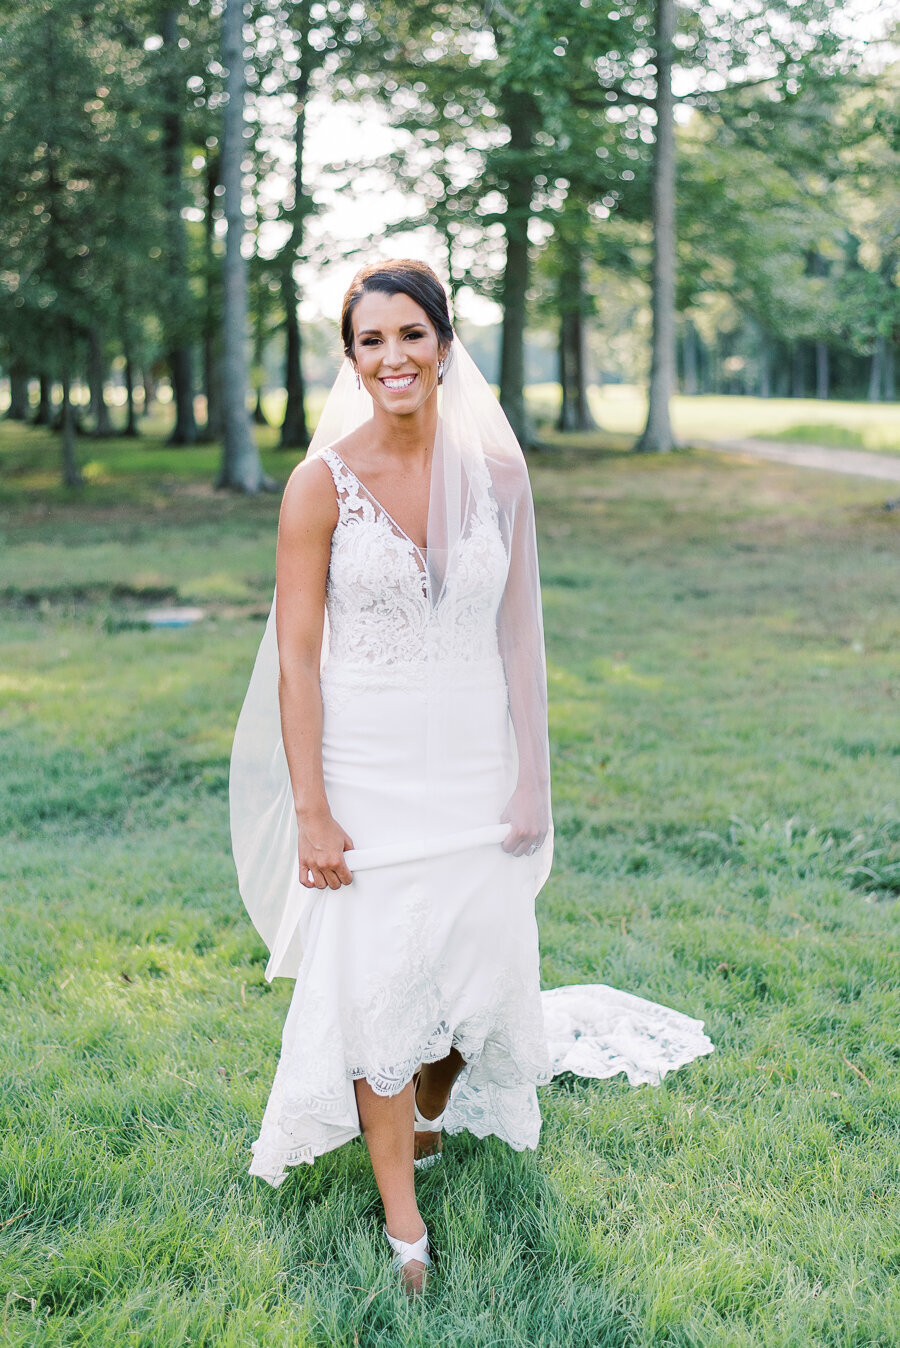 Prospect_Bay_Country_Club_Wedding_Maryland_Megan_Harris_Photography-43